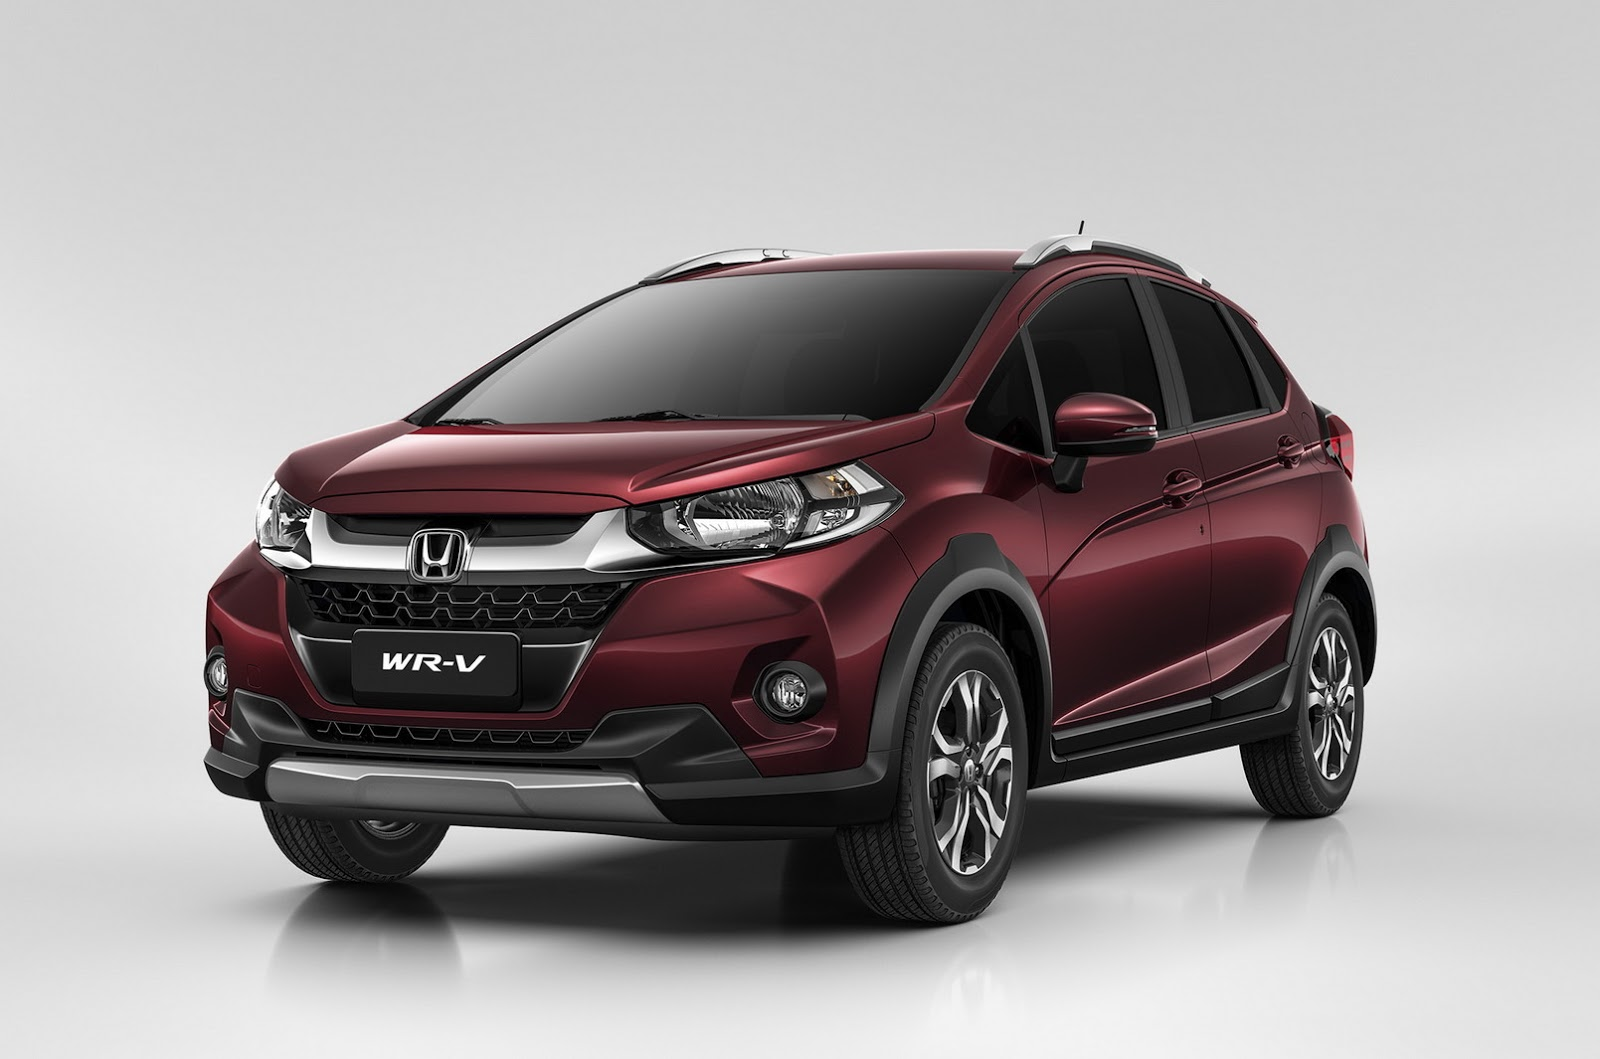 2017 Honda WR-V Mini Crossover Revealed in Brazil - autoevolution